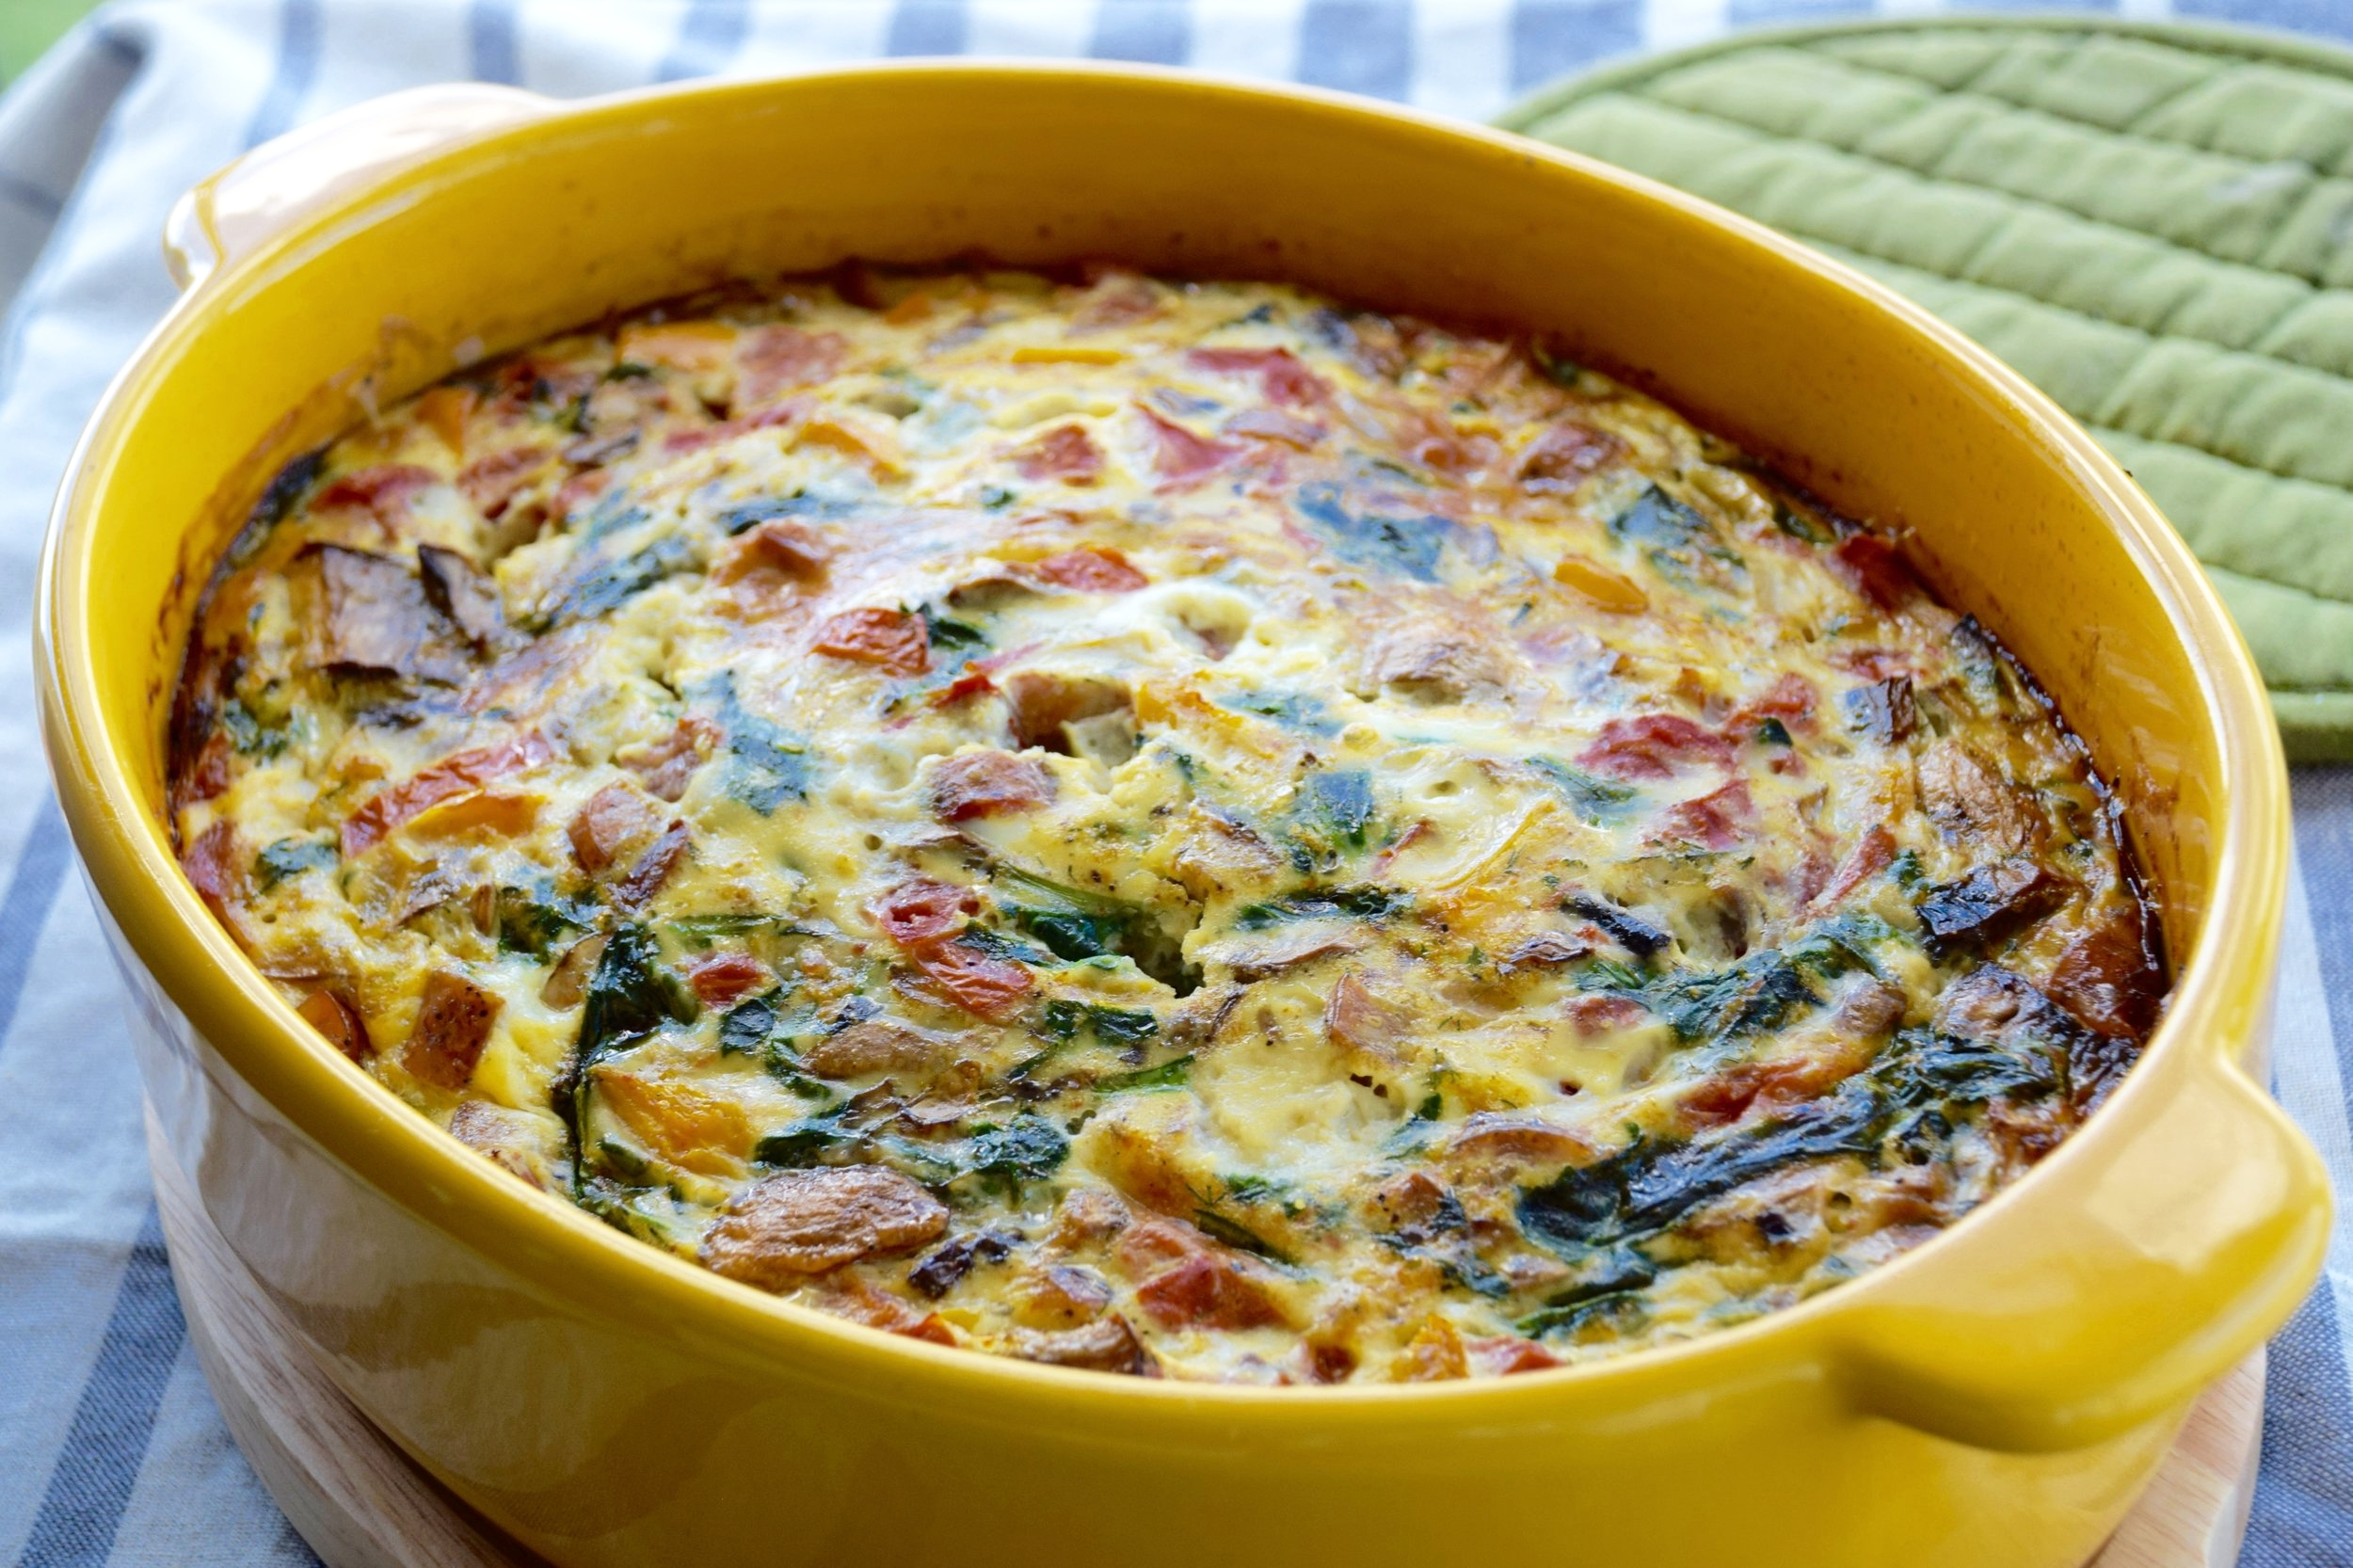 Crustless Quiche - Quick, Delicious & Family Approved!